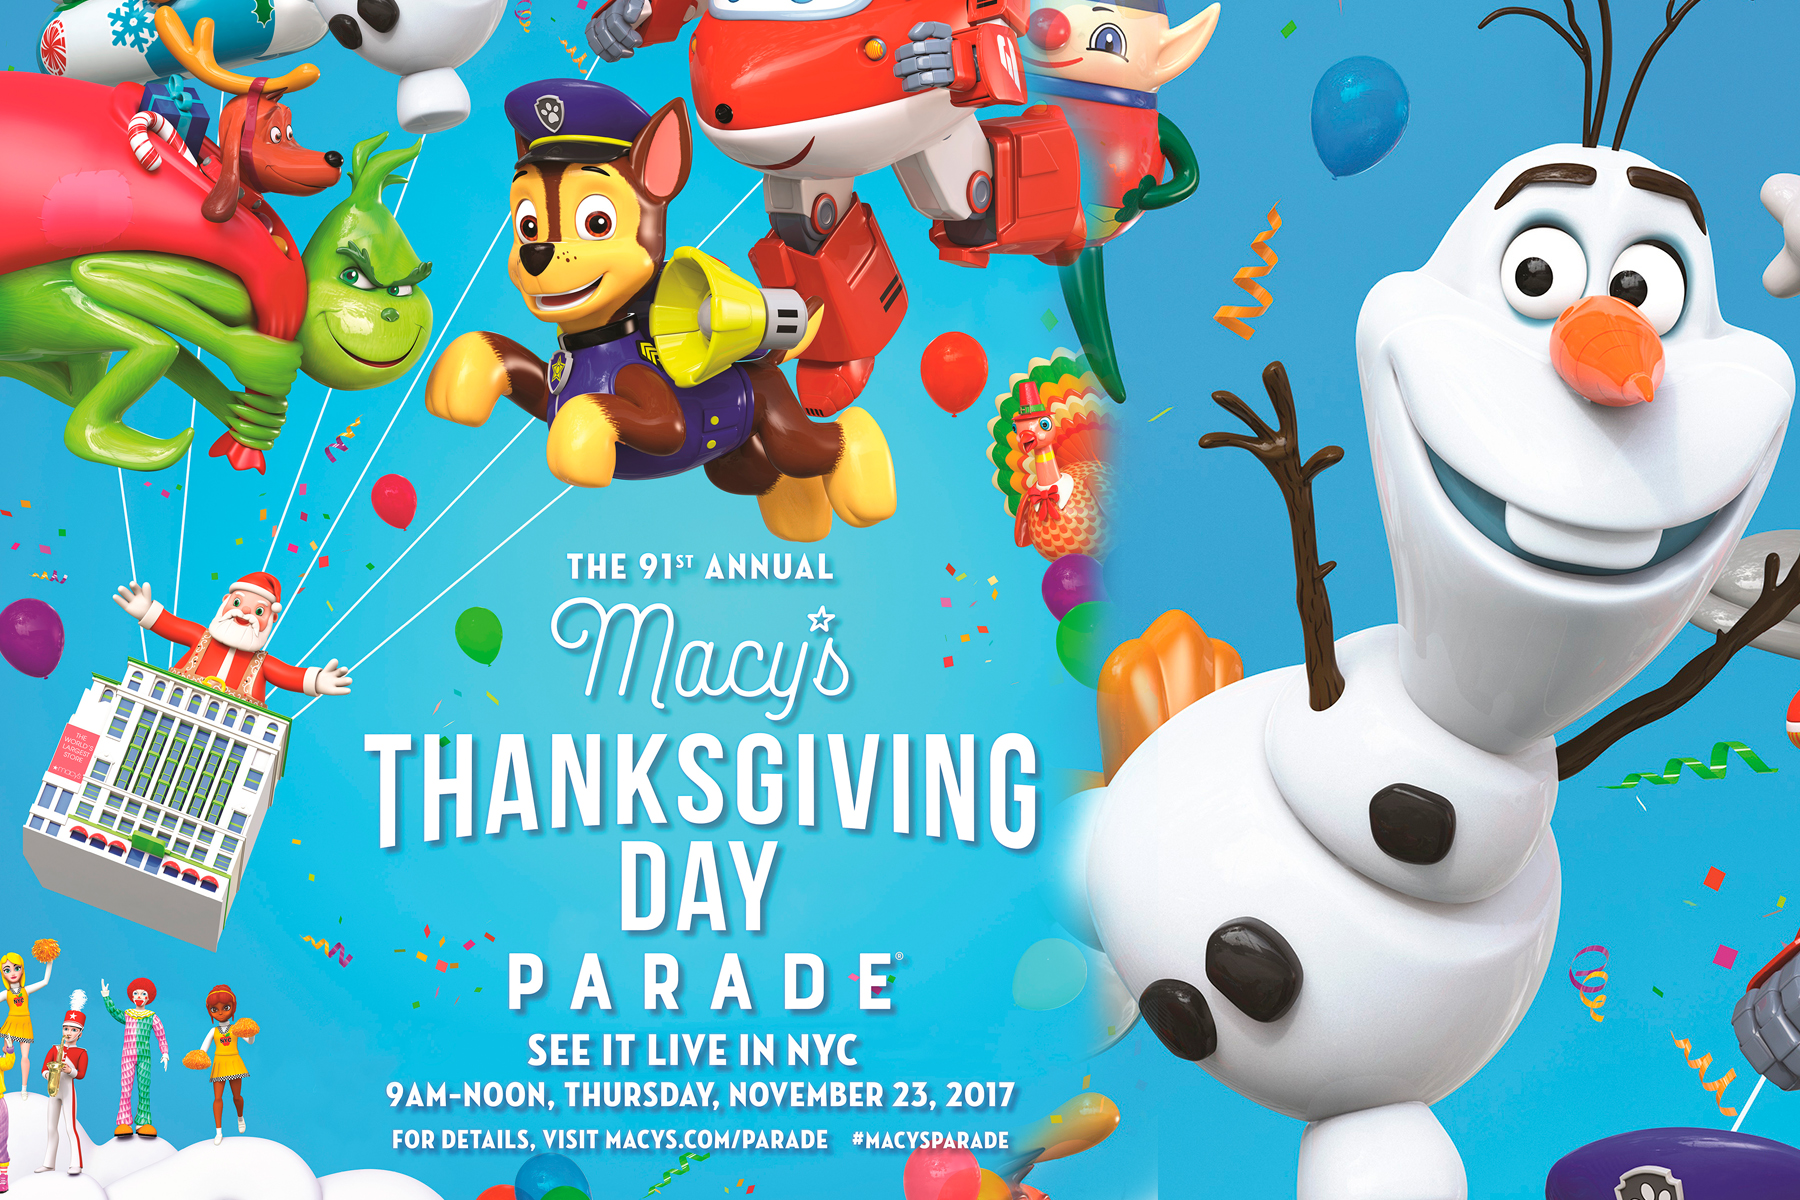 World-Renowned Macy's Thanksgiving Day Parade Kicks off the Holiday Season with Its 91st Spectacle of Wonder!